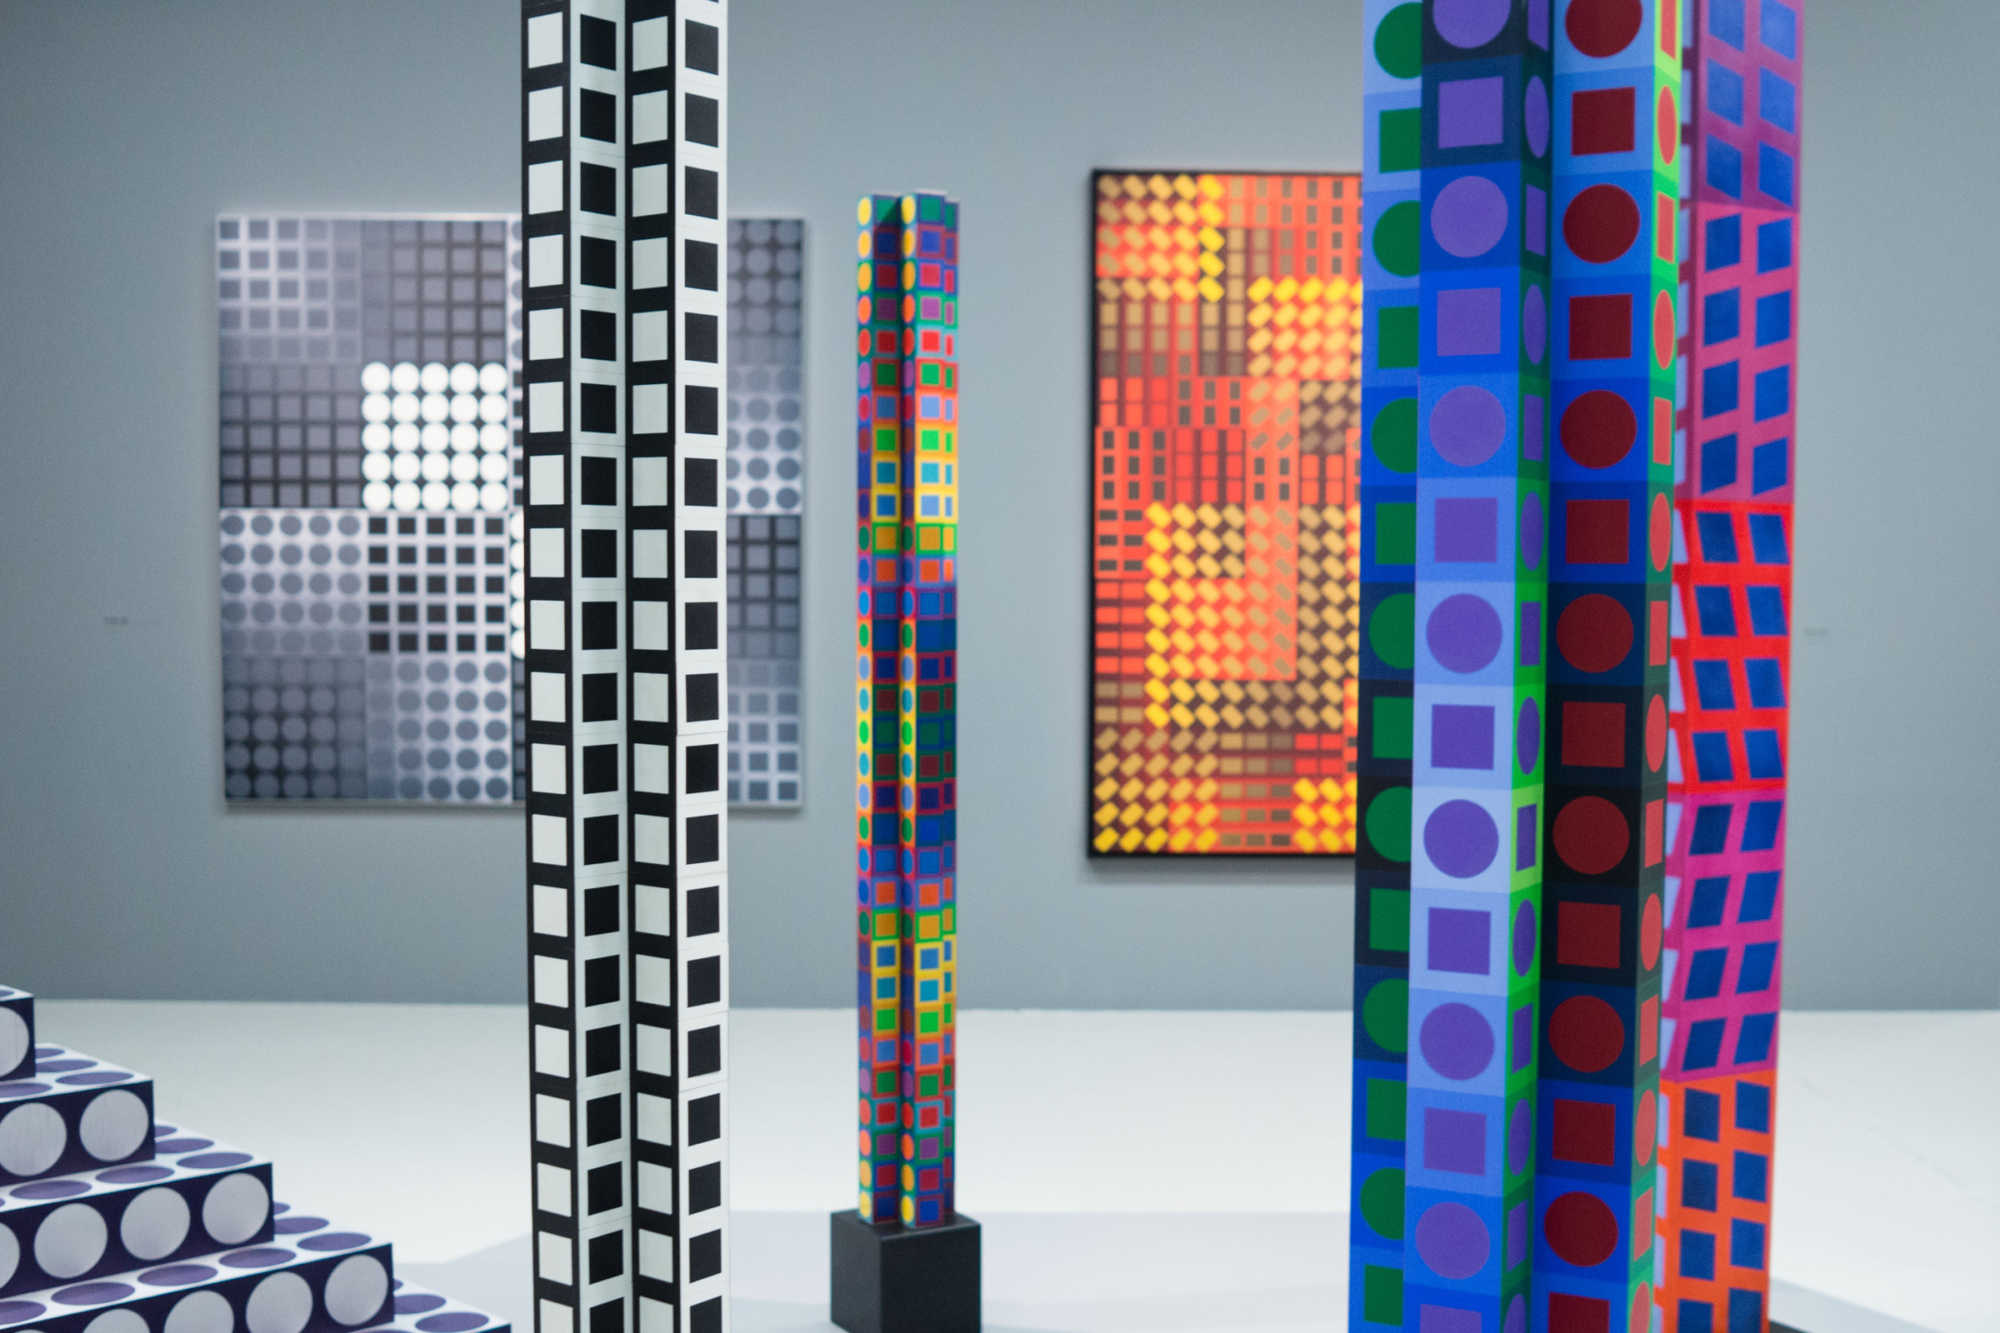 TheWaysBeyond - Centre Pompidou / Vasarely